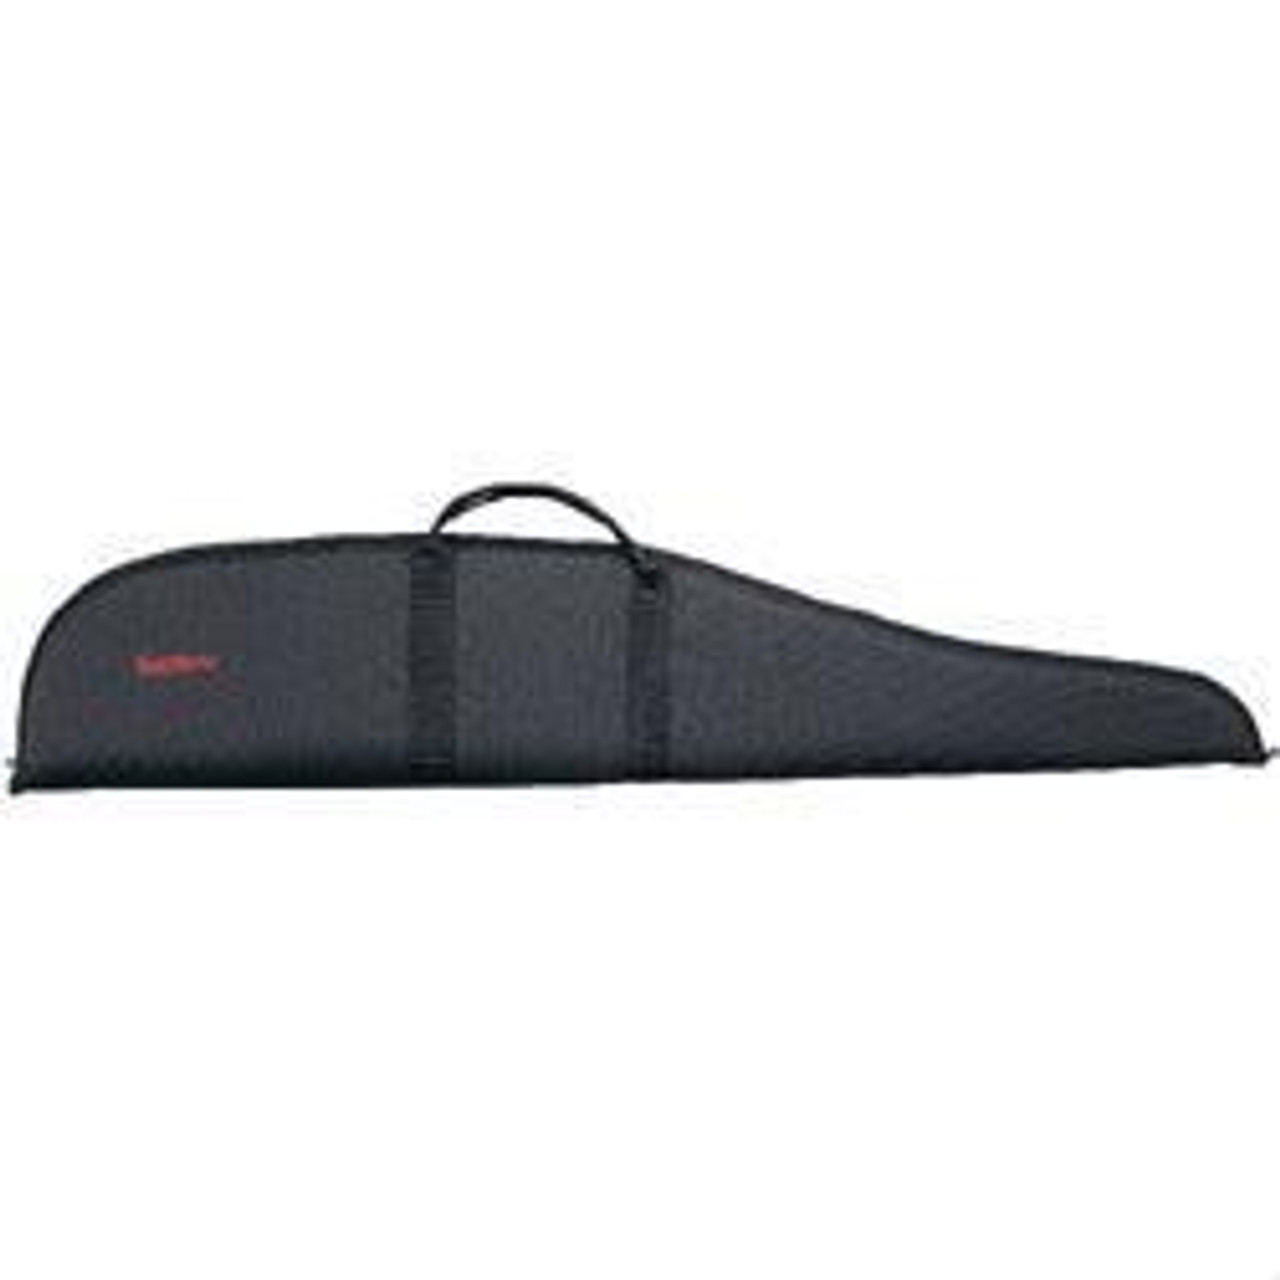 "GunMate Scoped Rifle Case Black Nylon 48"" 22416"